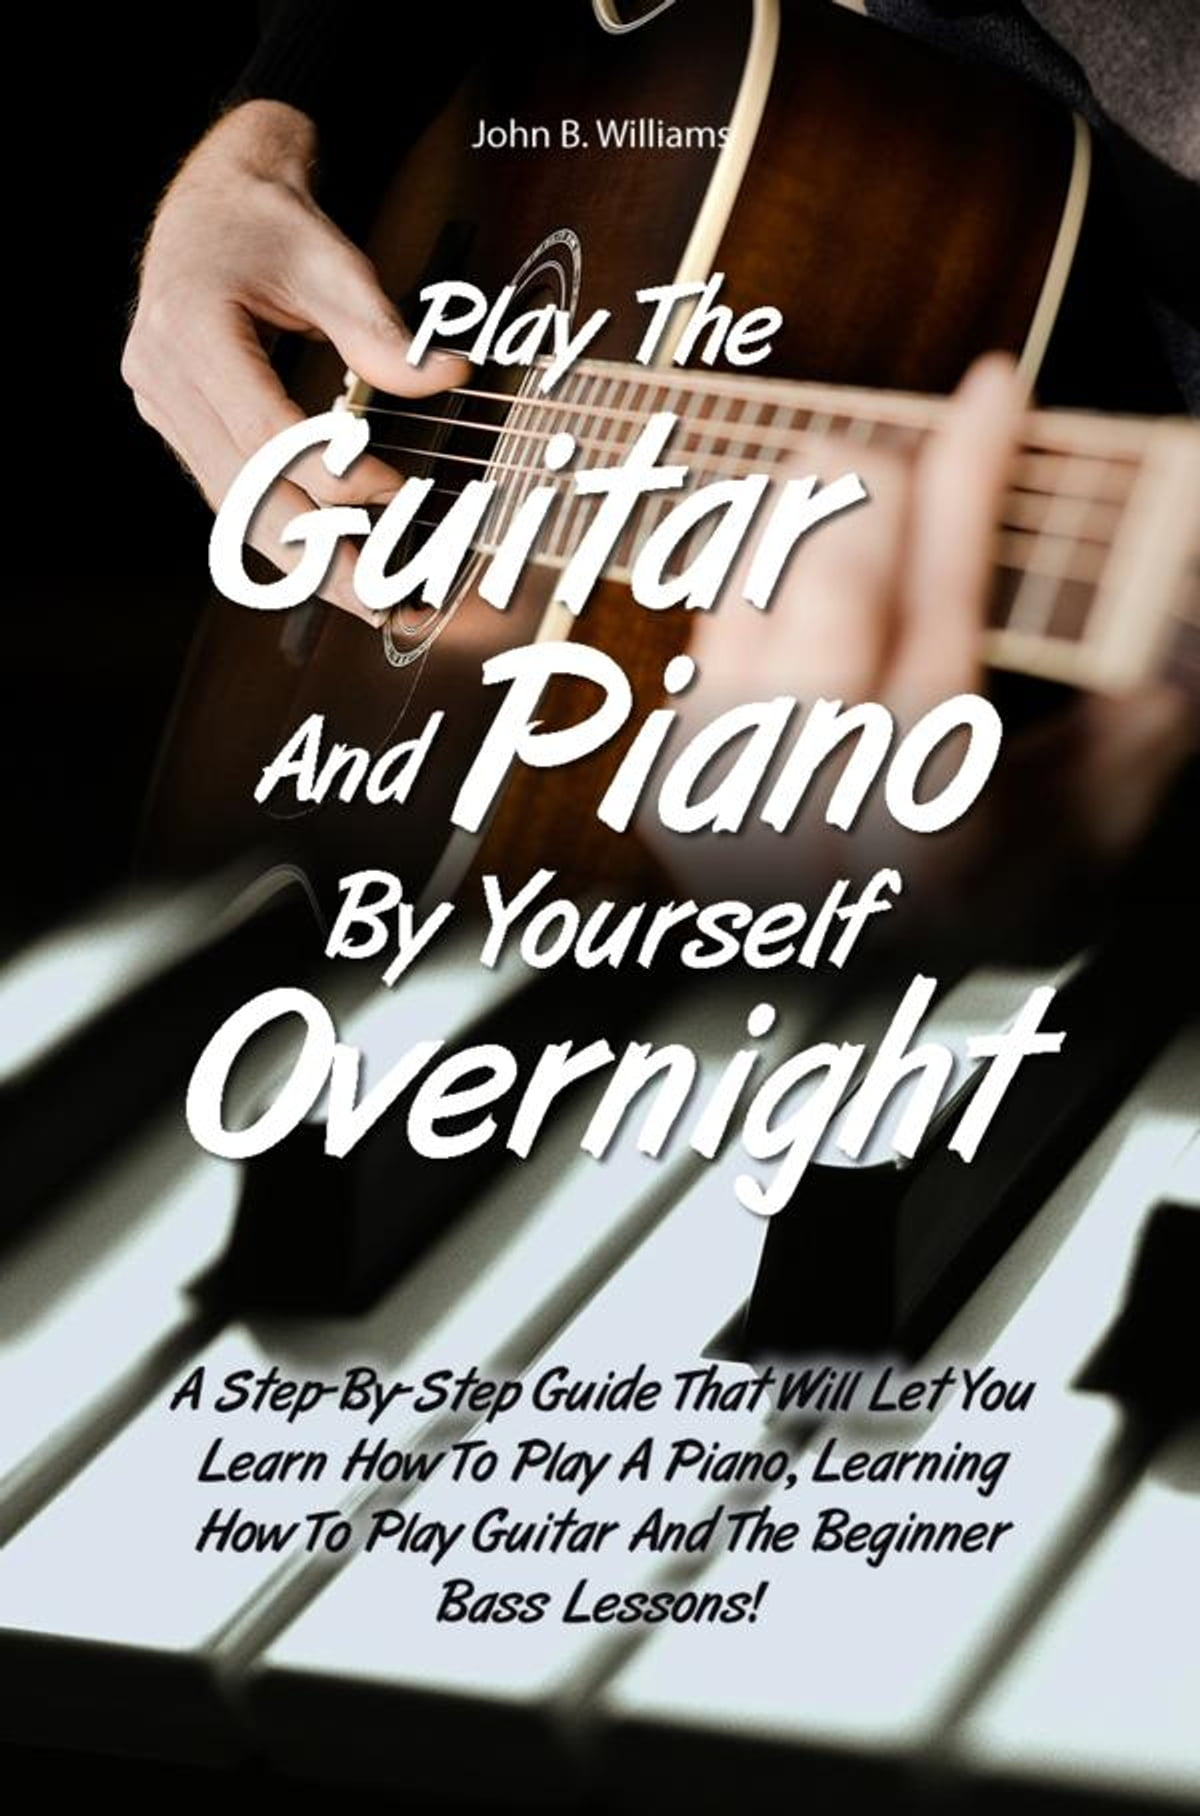 Discussion on this topic: How to Play by Yourself, how-to-play-by-yourself/